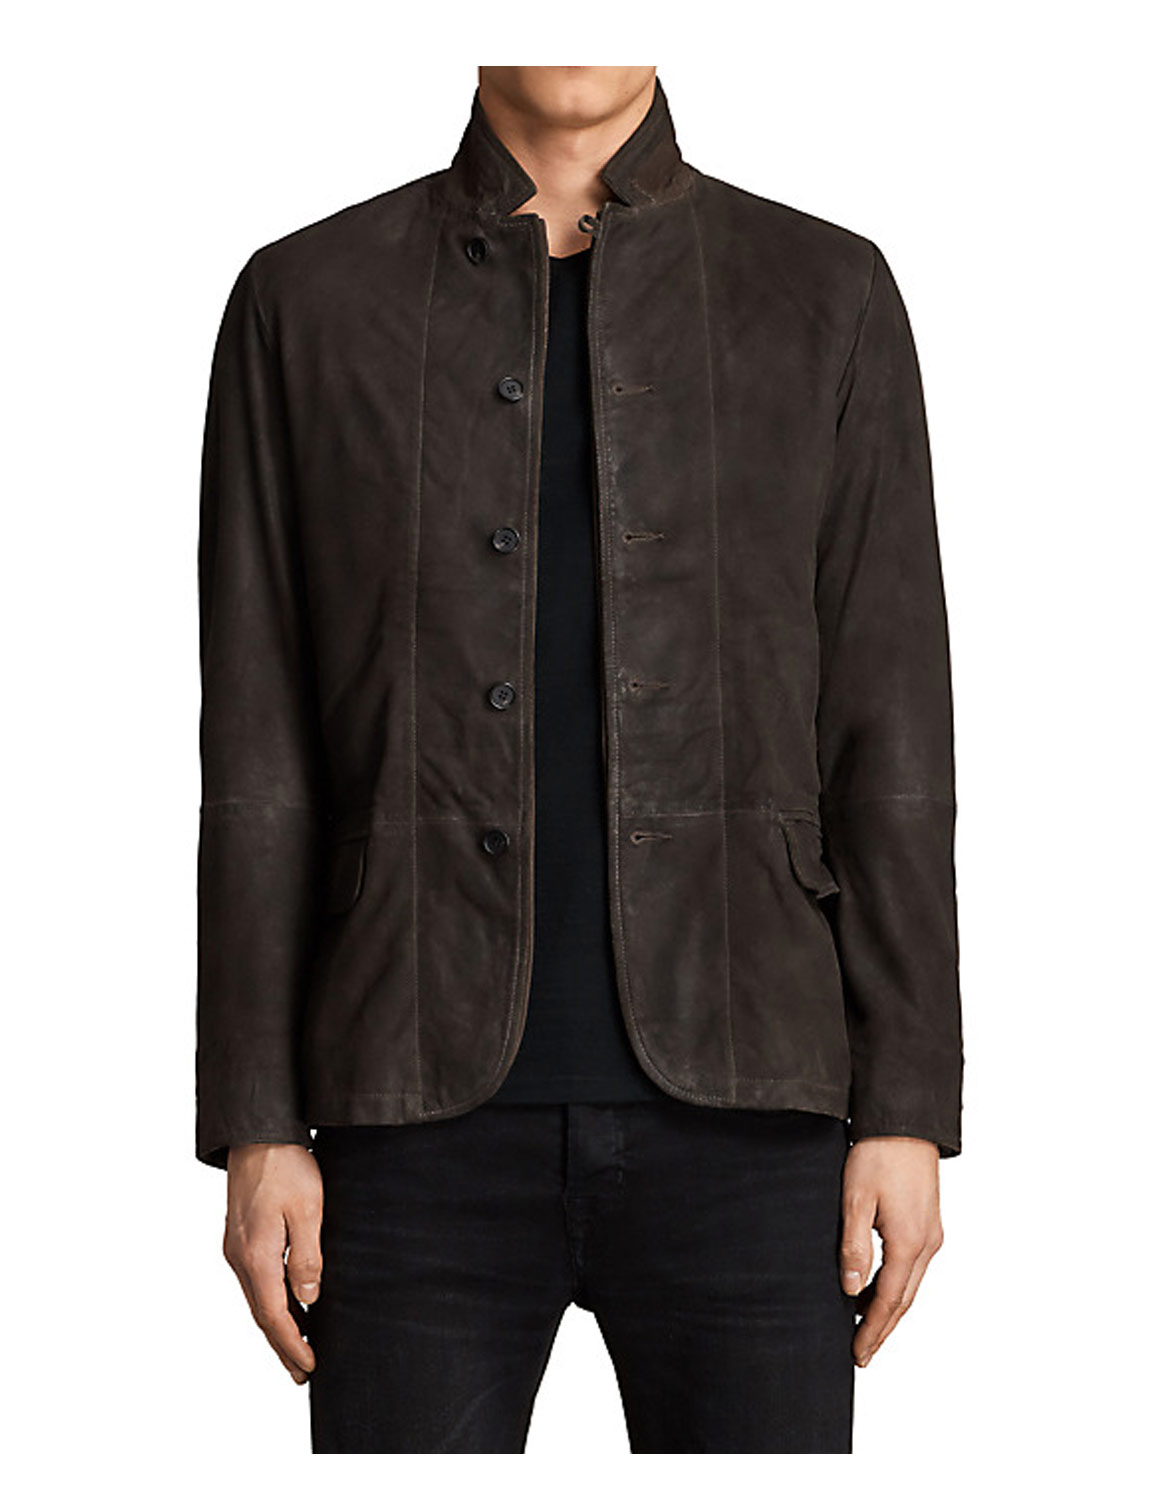 Casual Brown Blazer Jacket for Men